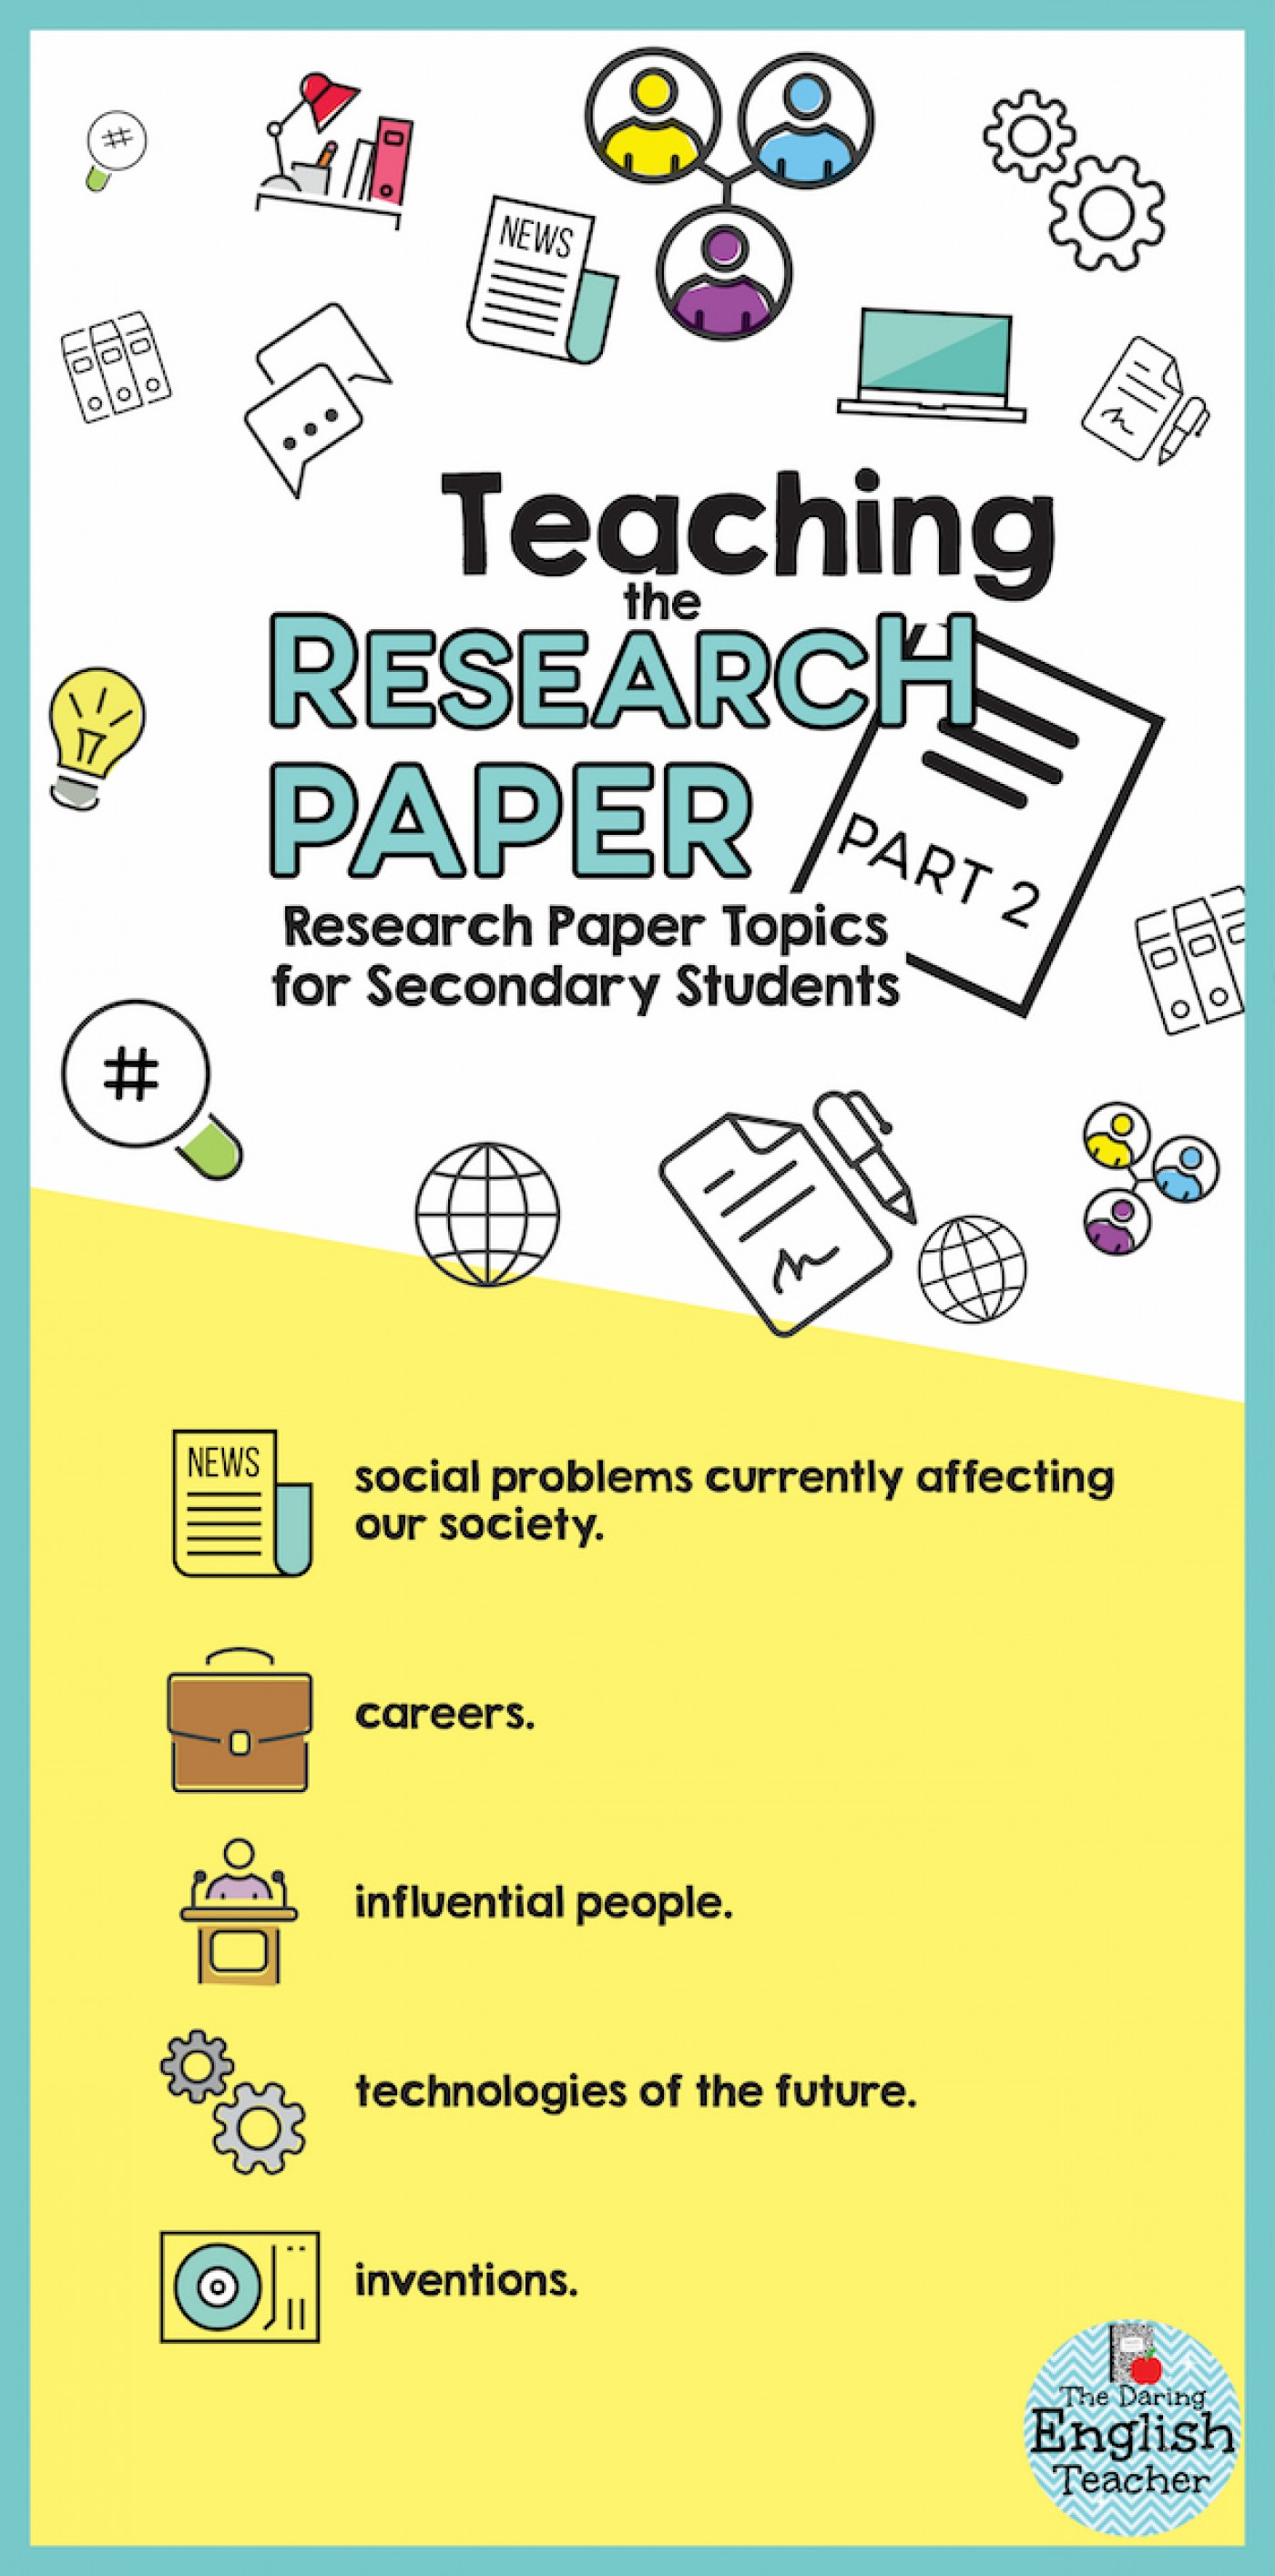 020 Infographic2bp22b2 Research Paper Topic For Unusual A Topics In Criminal Justice Psychology Business Administration 1400